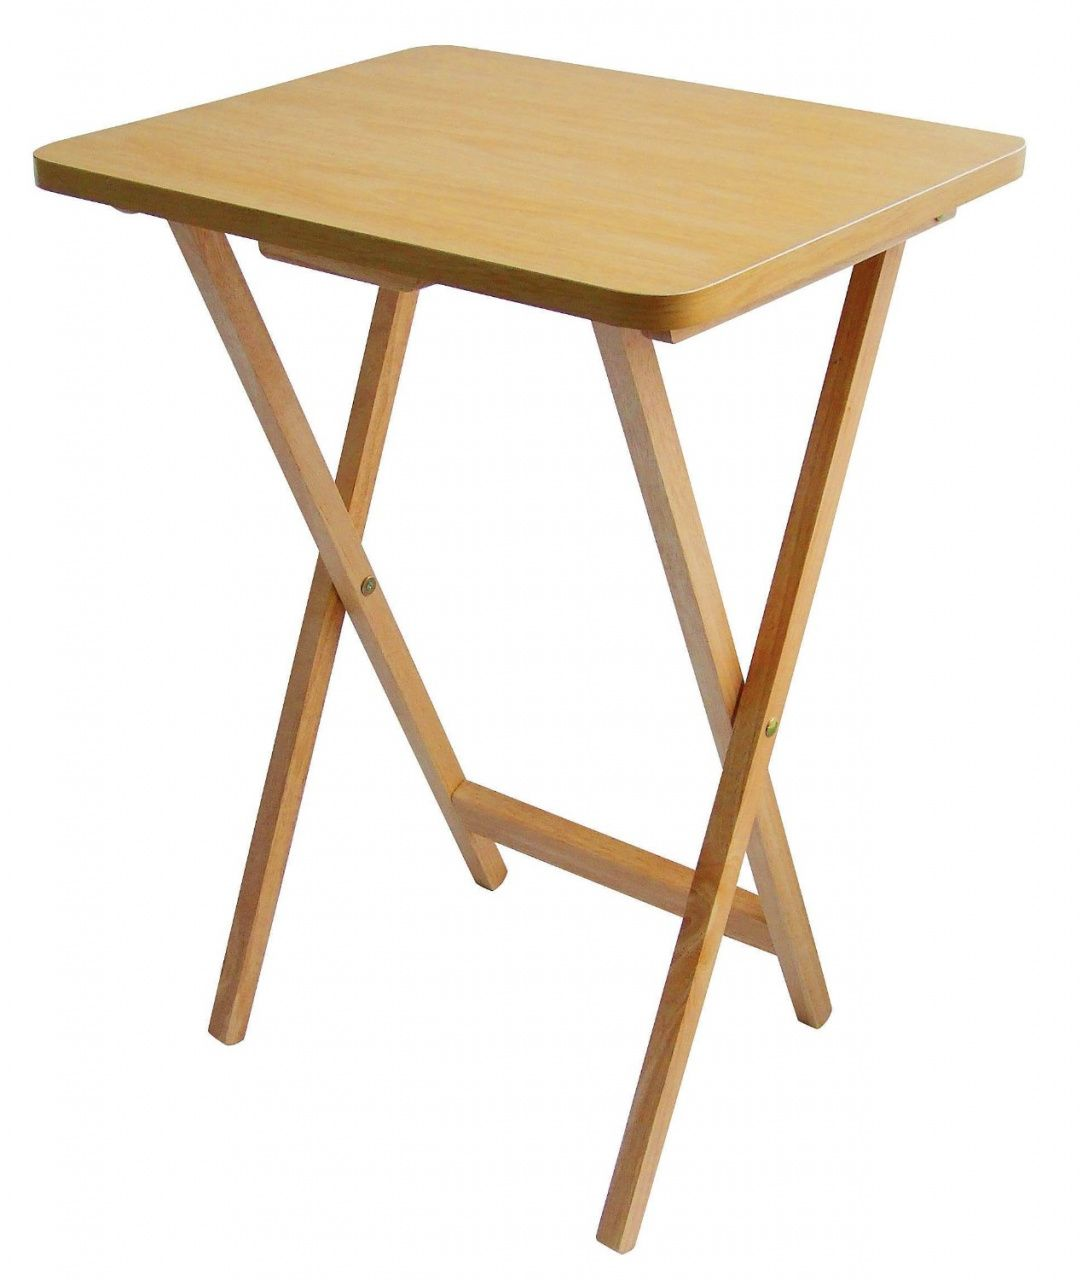 Ikea Small Folding Table Large Home Office Furniture Check More At Http Www Nikkitsfun Com Ikea Small Foldi Folding Snack Table Side Table Wood Snack Table